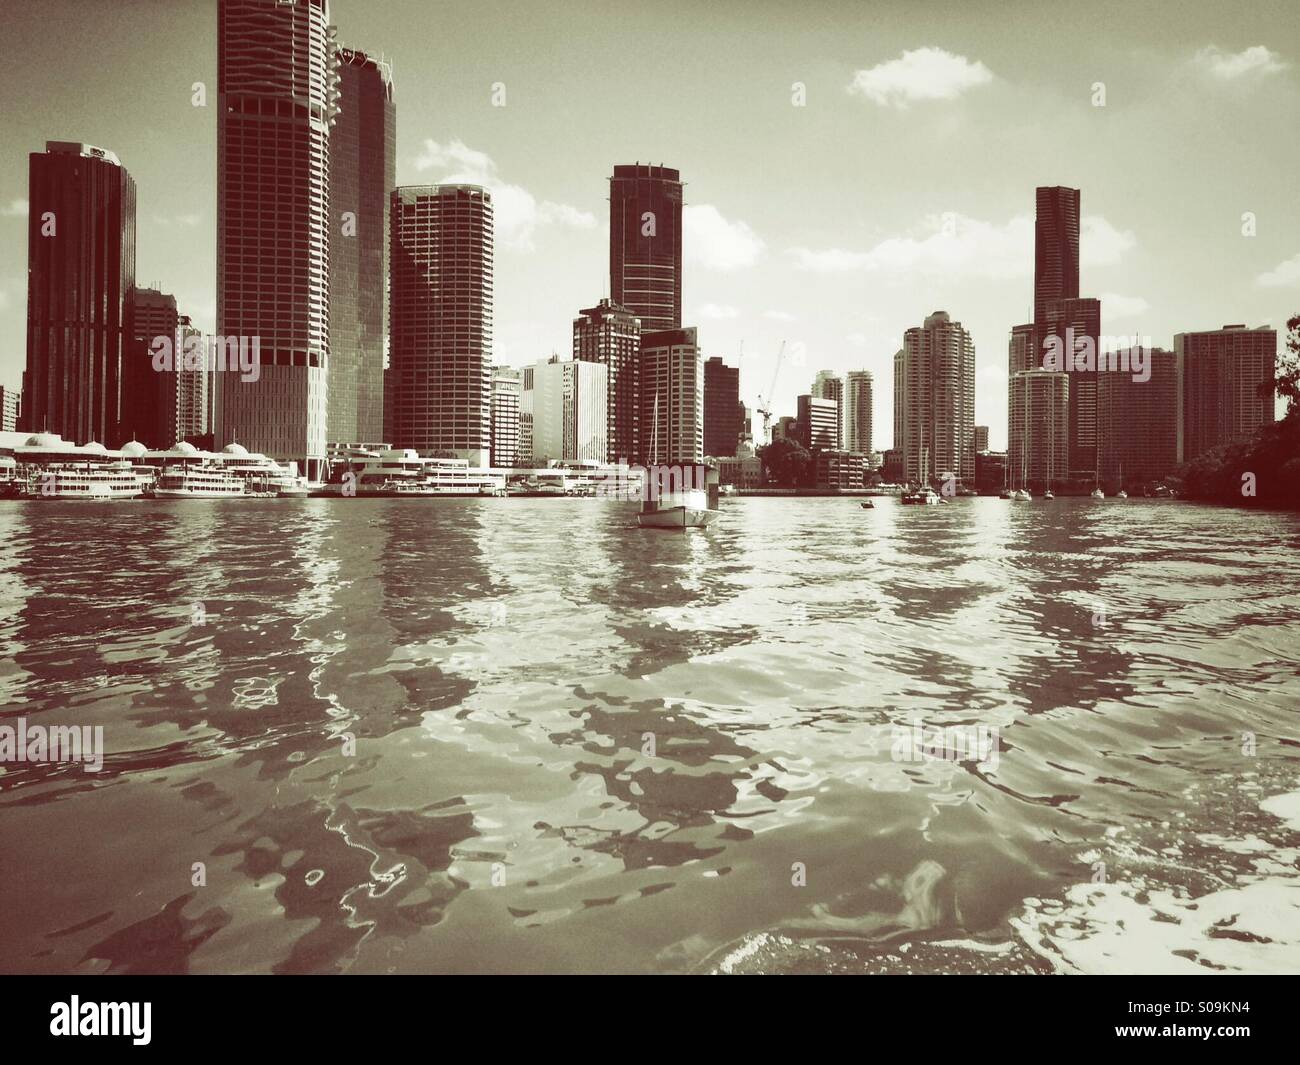 Brisbane City from the Brisbane river. - Stock Image